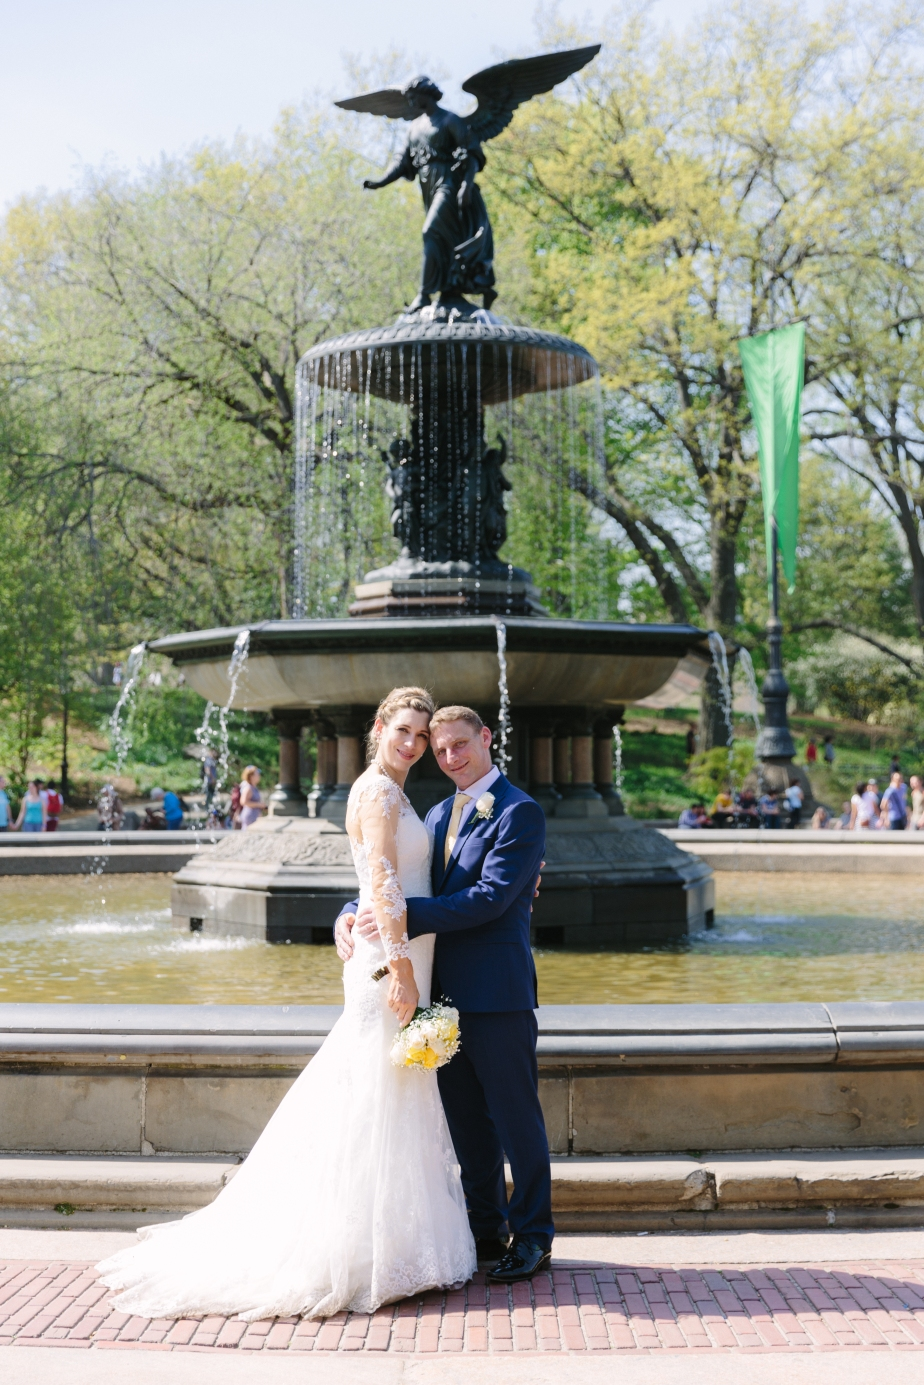 Wagner-cove-central-park-wedding-SS-251